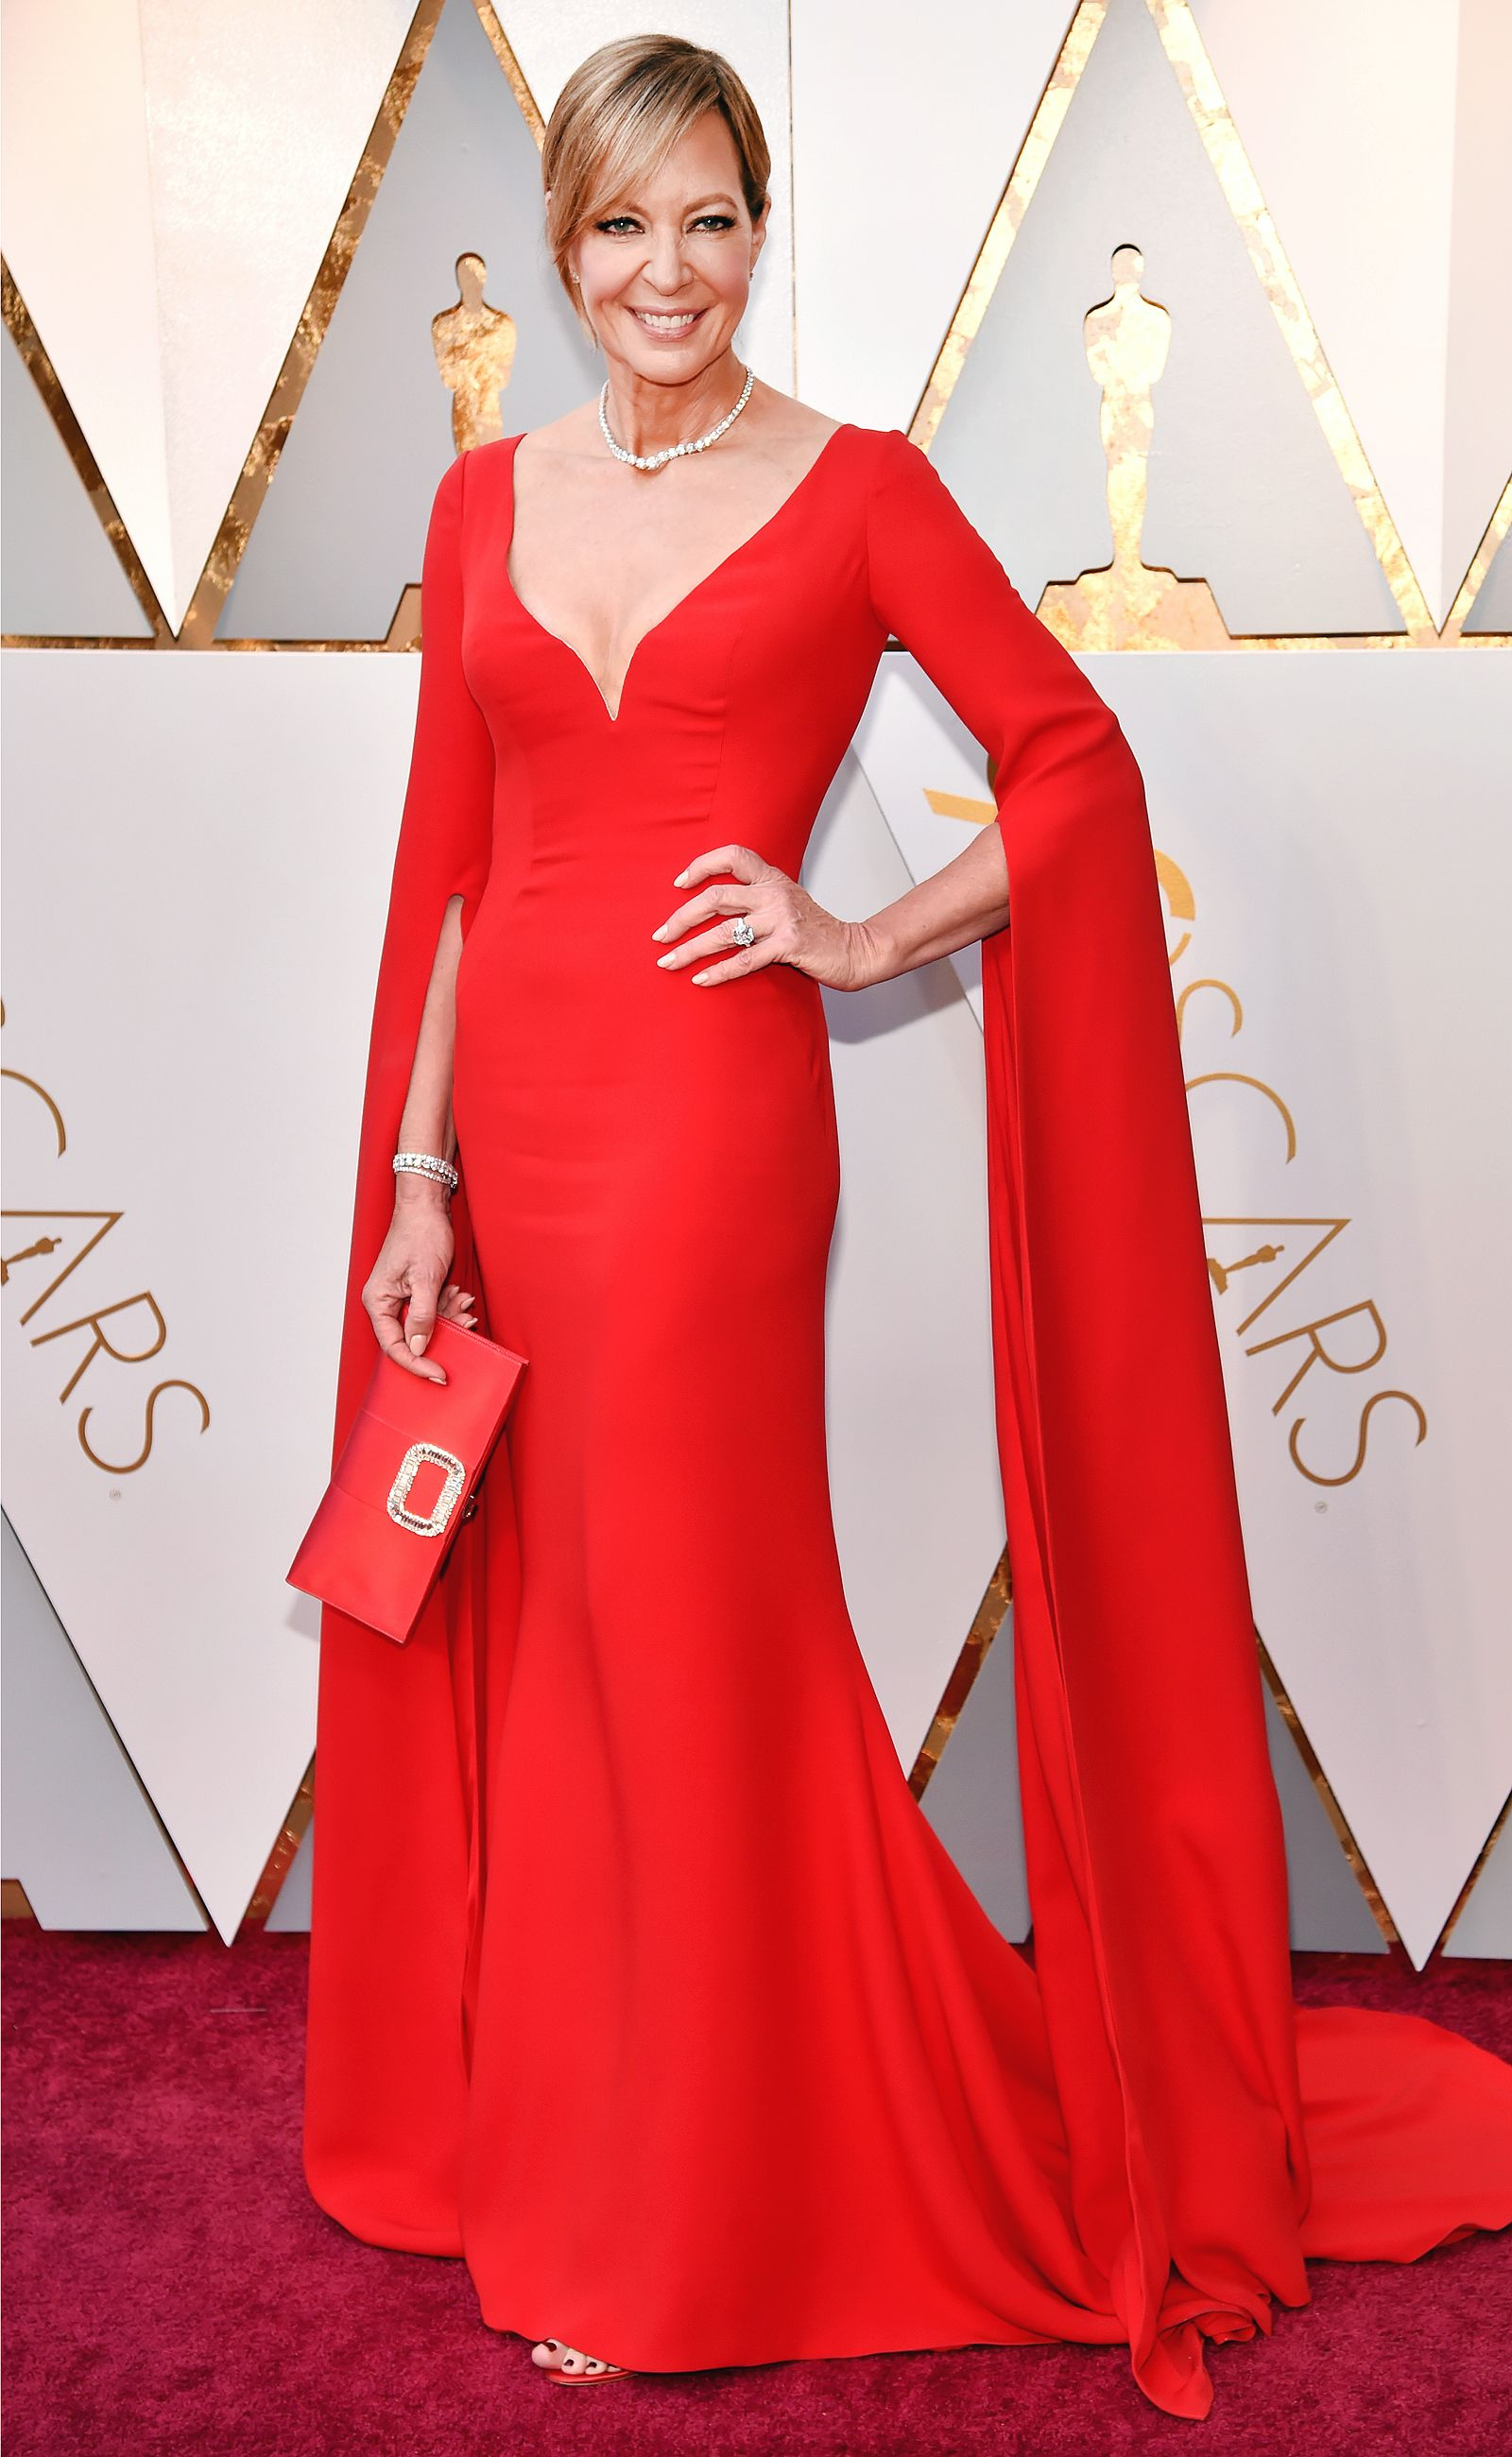 Allison Janney Wears More Than 4 Million Worth Of Jewelry To The Oscars I Feel Incredibly Special Red Carpet Oscars Red Carpet Dresses Oscars Red Carpet Dresses